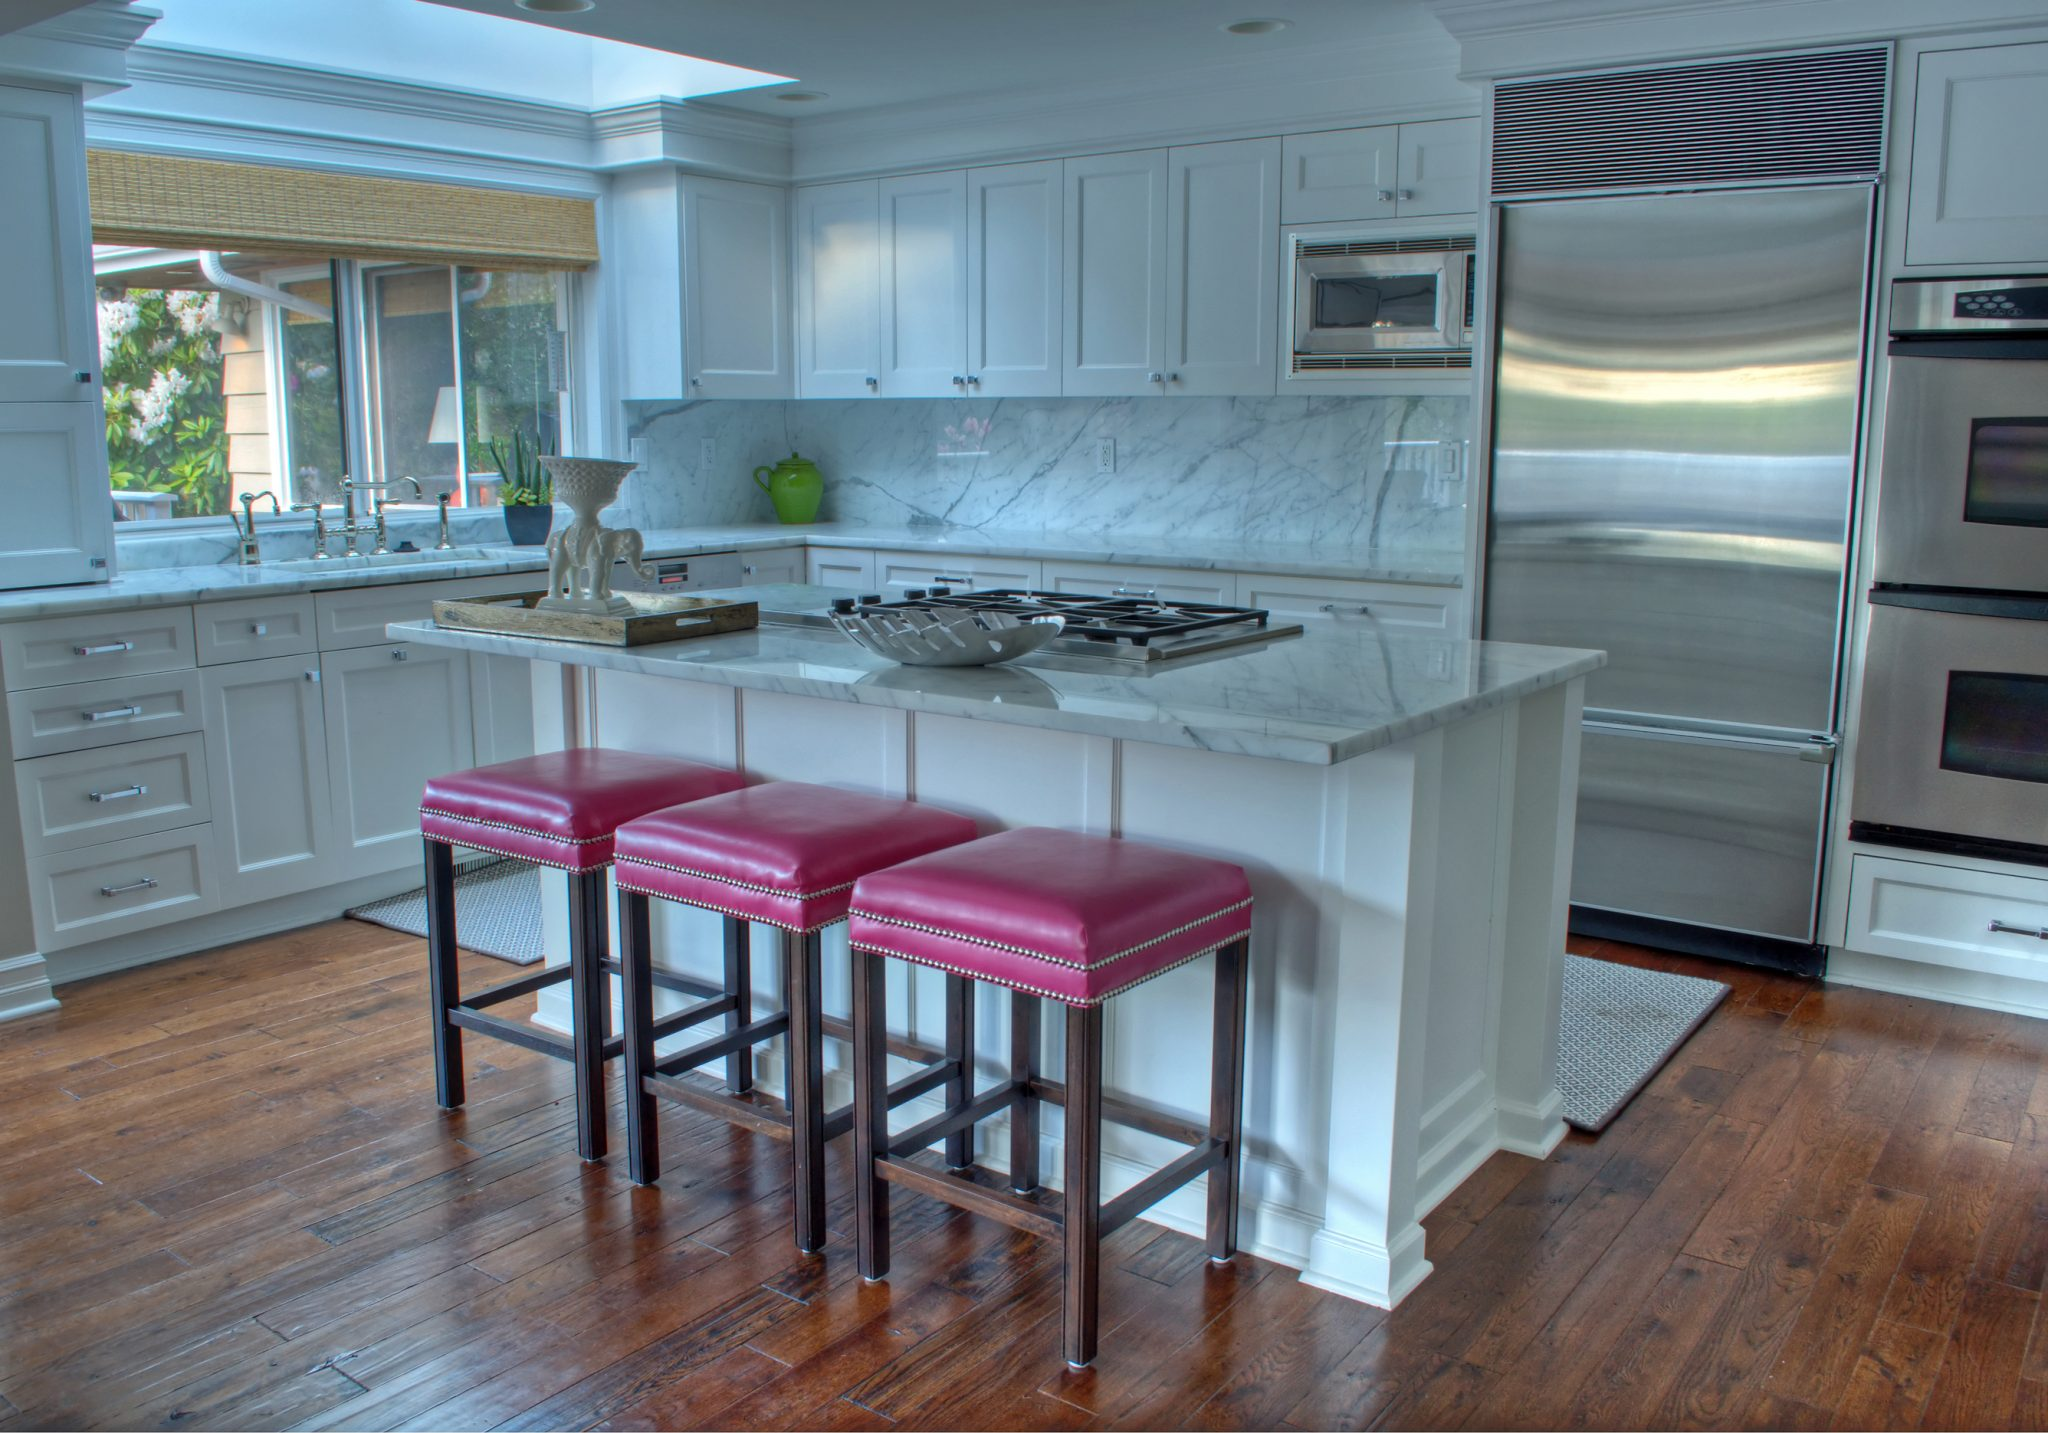 Live Life With Color - Magazi Kitchens & Baths